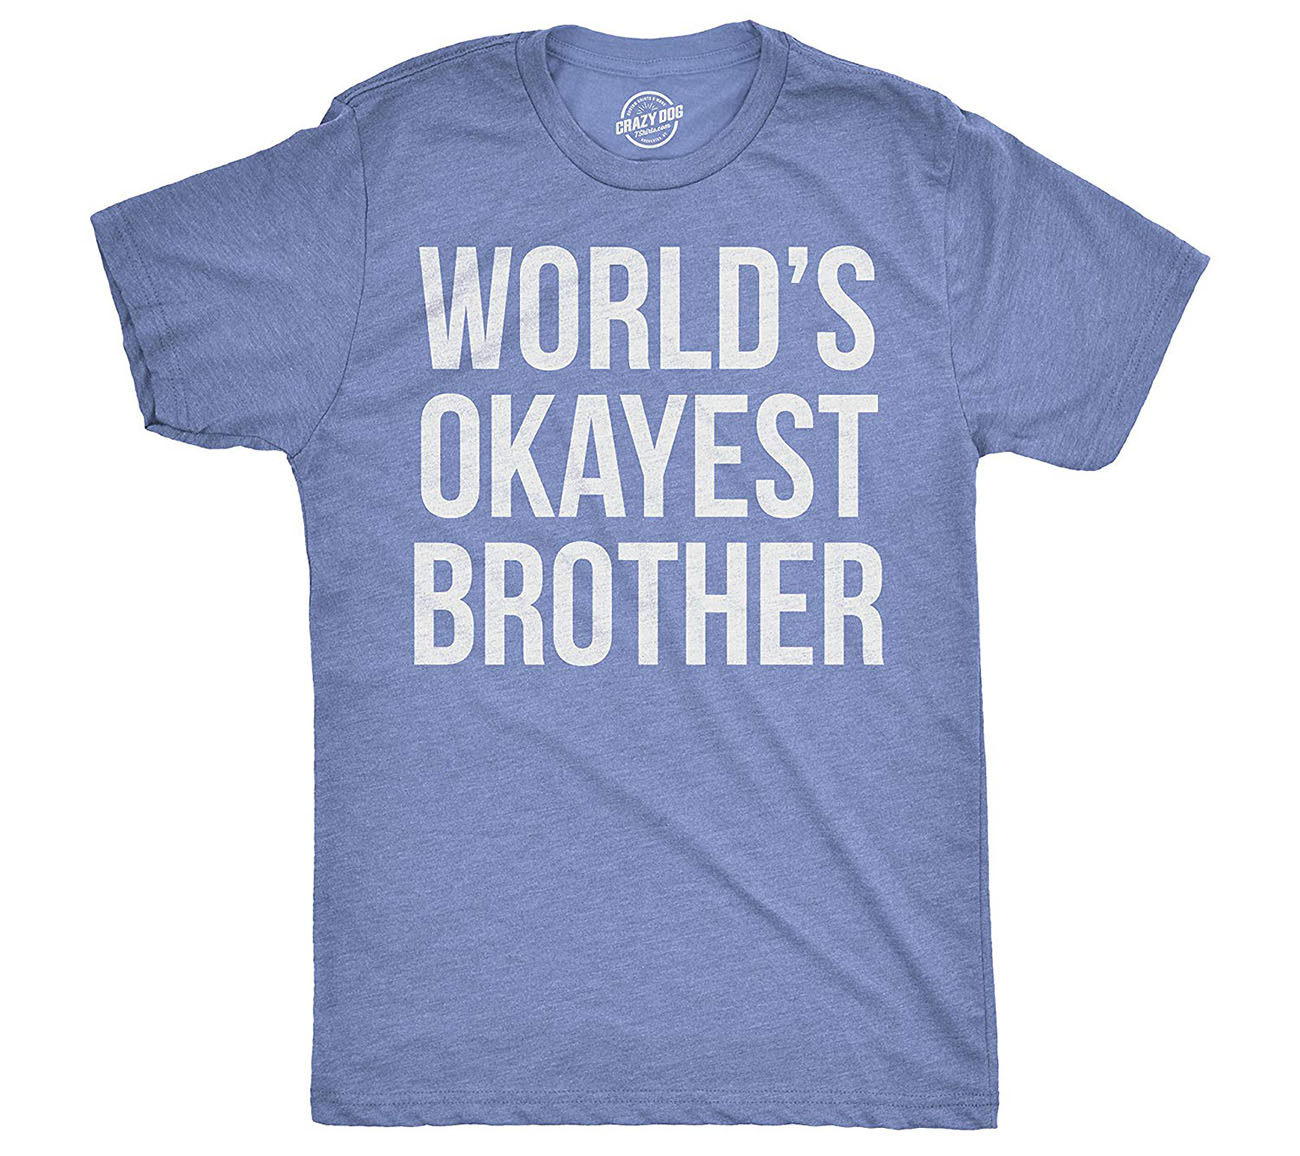 worlds okayest brother shirt